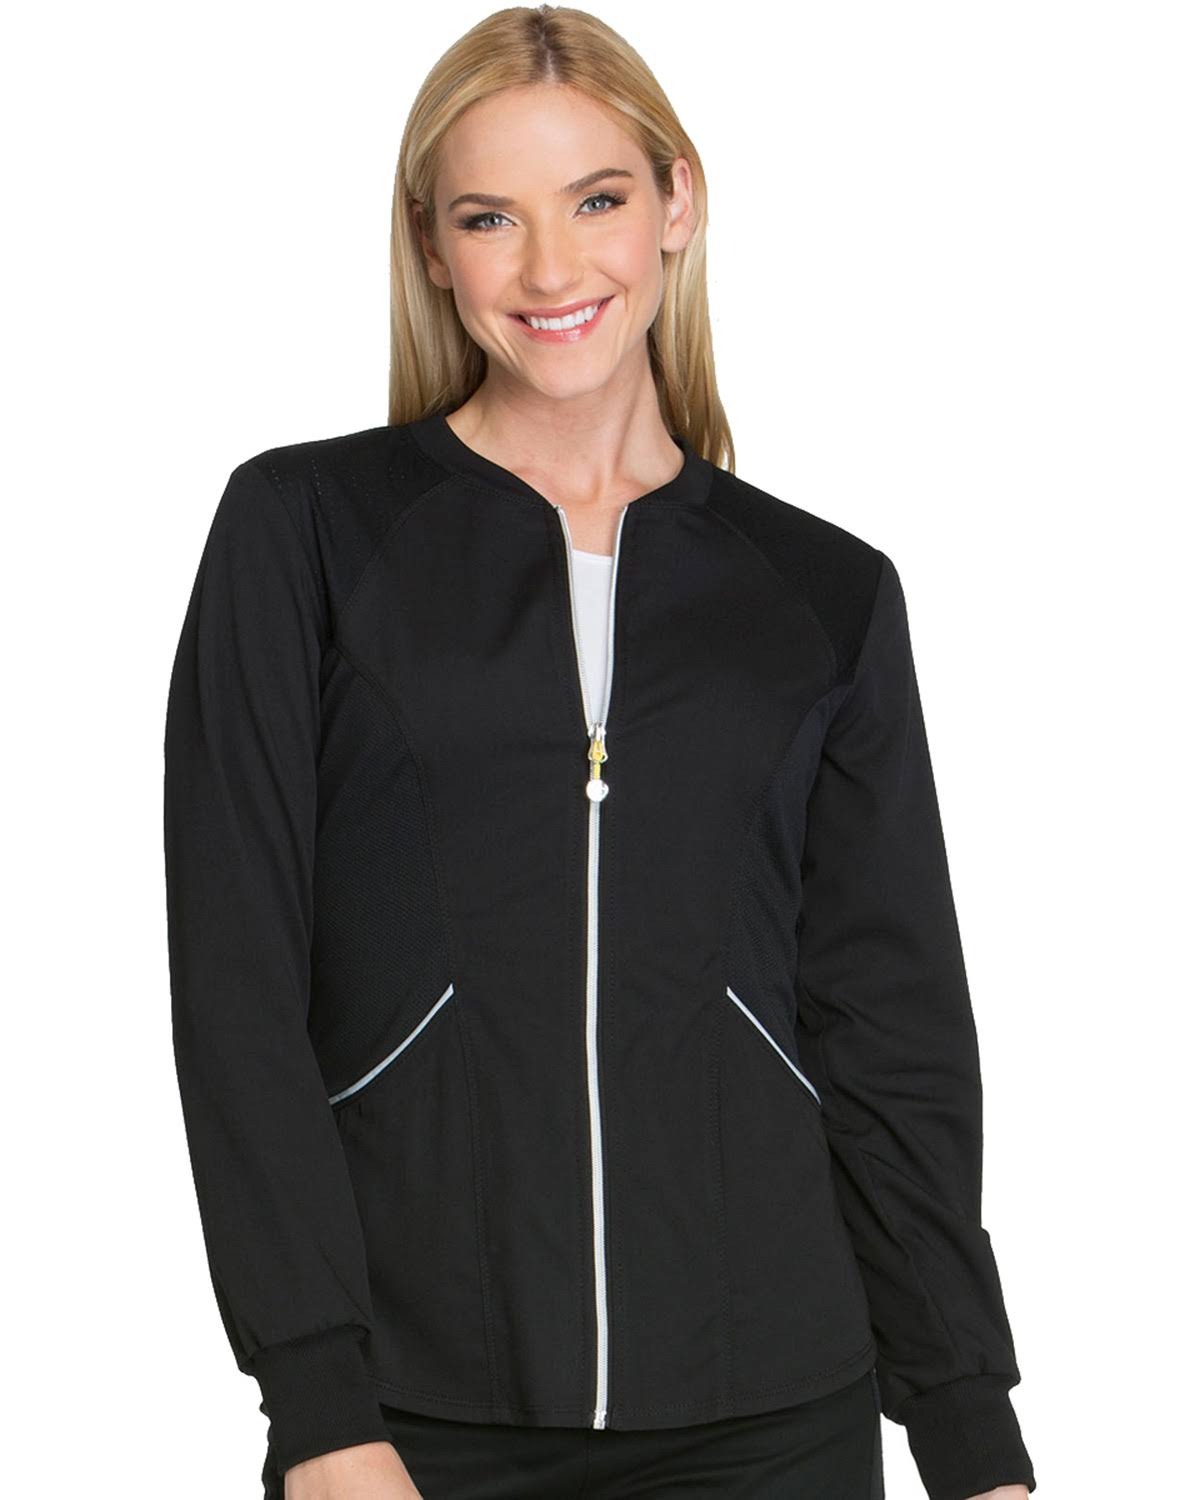 Cherokee CK300 Zip Front Warm-Up Jacket - Black - XS